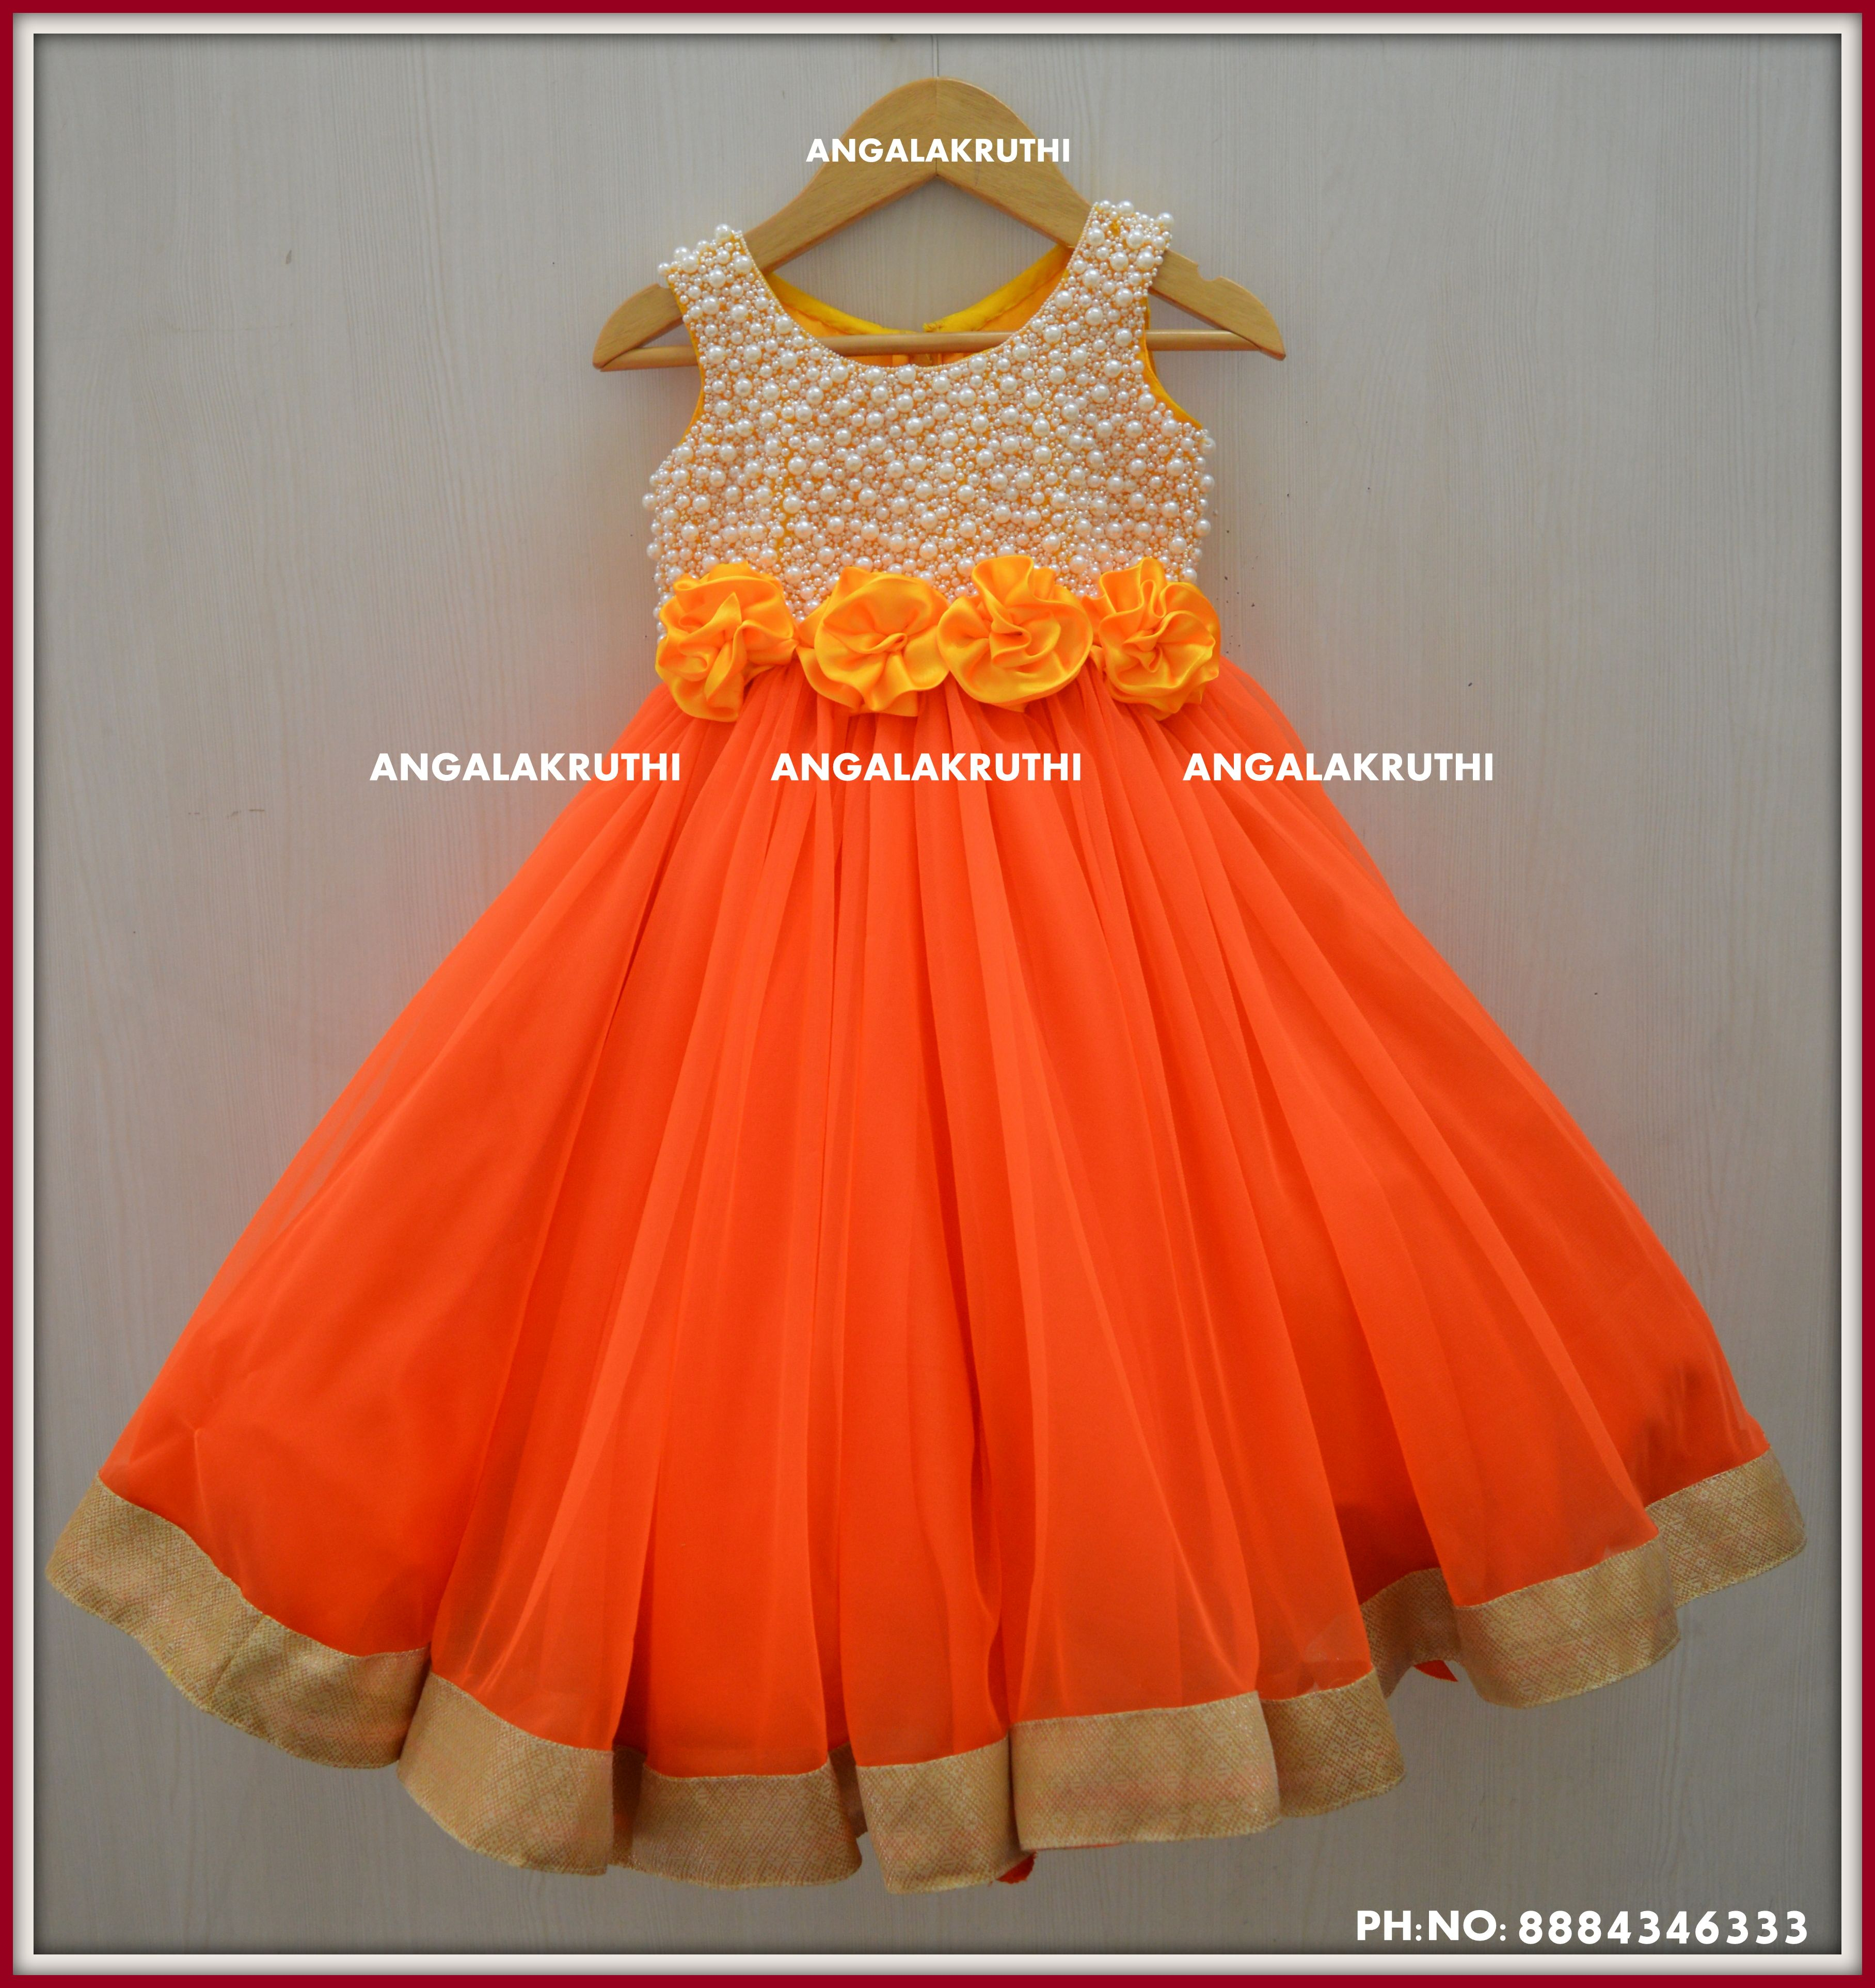 c3fe2d3c3cf #Indian traditional frock with pearl hand embroidery designs by Angalakruthi-Ladies  and kids custom designer boutique in Horamavu-Bangalore #Pearl hand ...